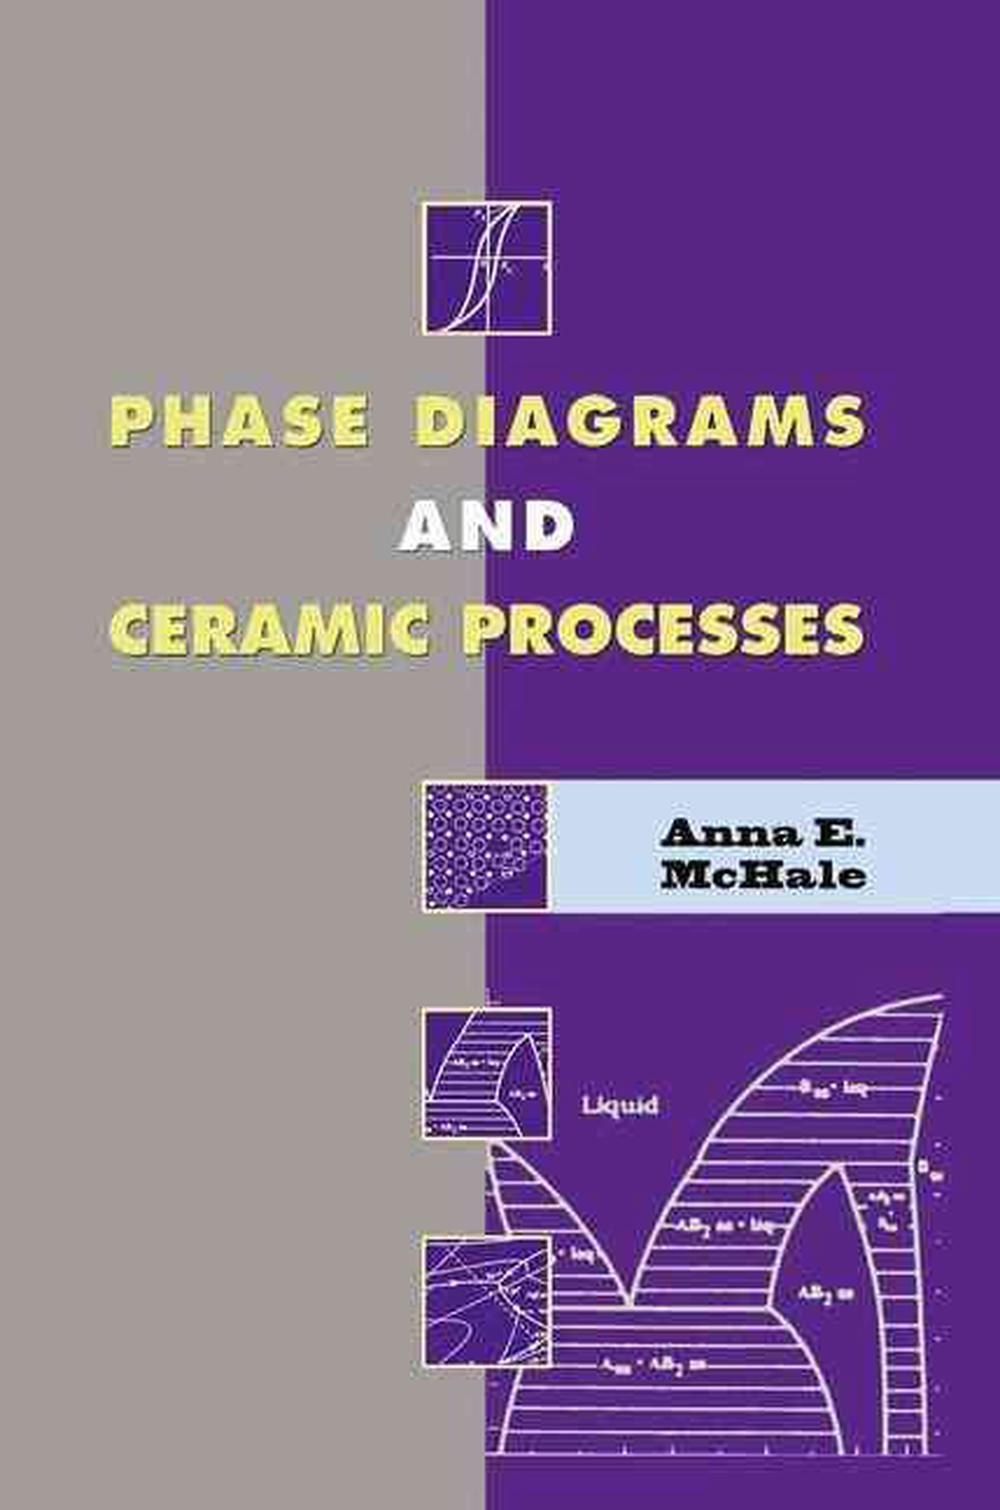 Phase Diagrams And Ceramic Processes By Anna E  Mchale  English  Hardcover Book 9780412131912